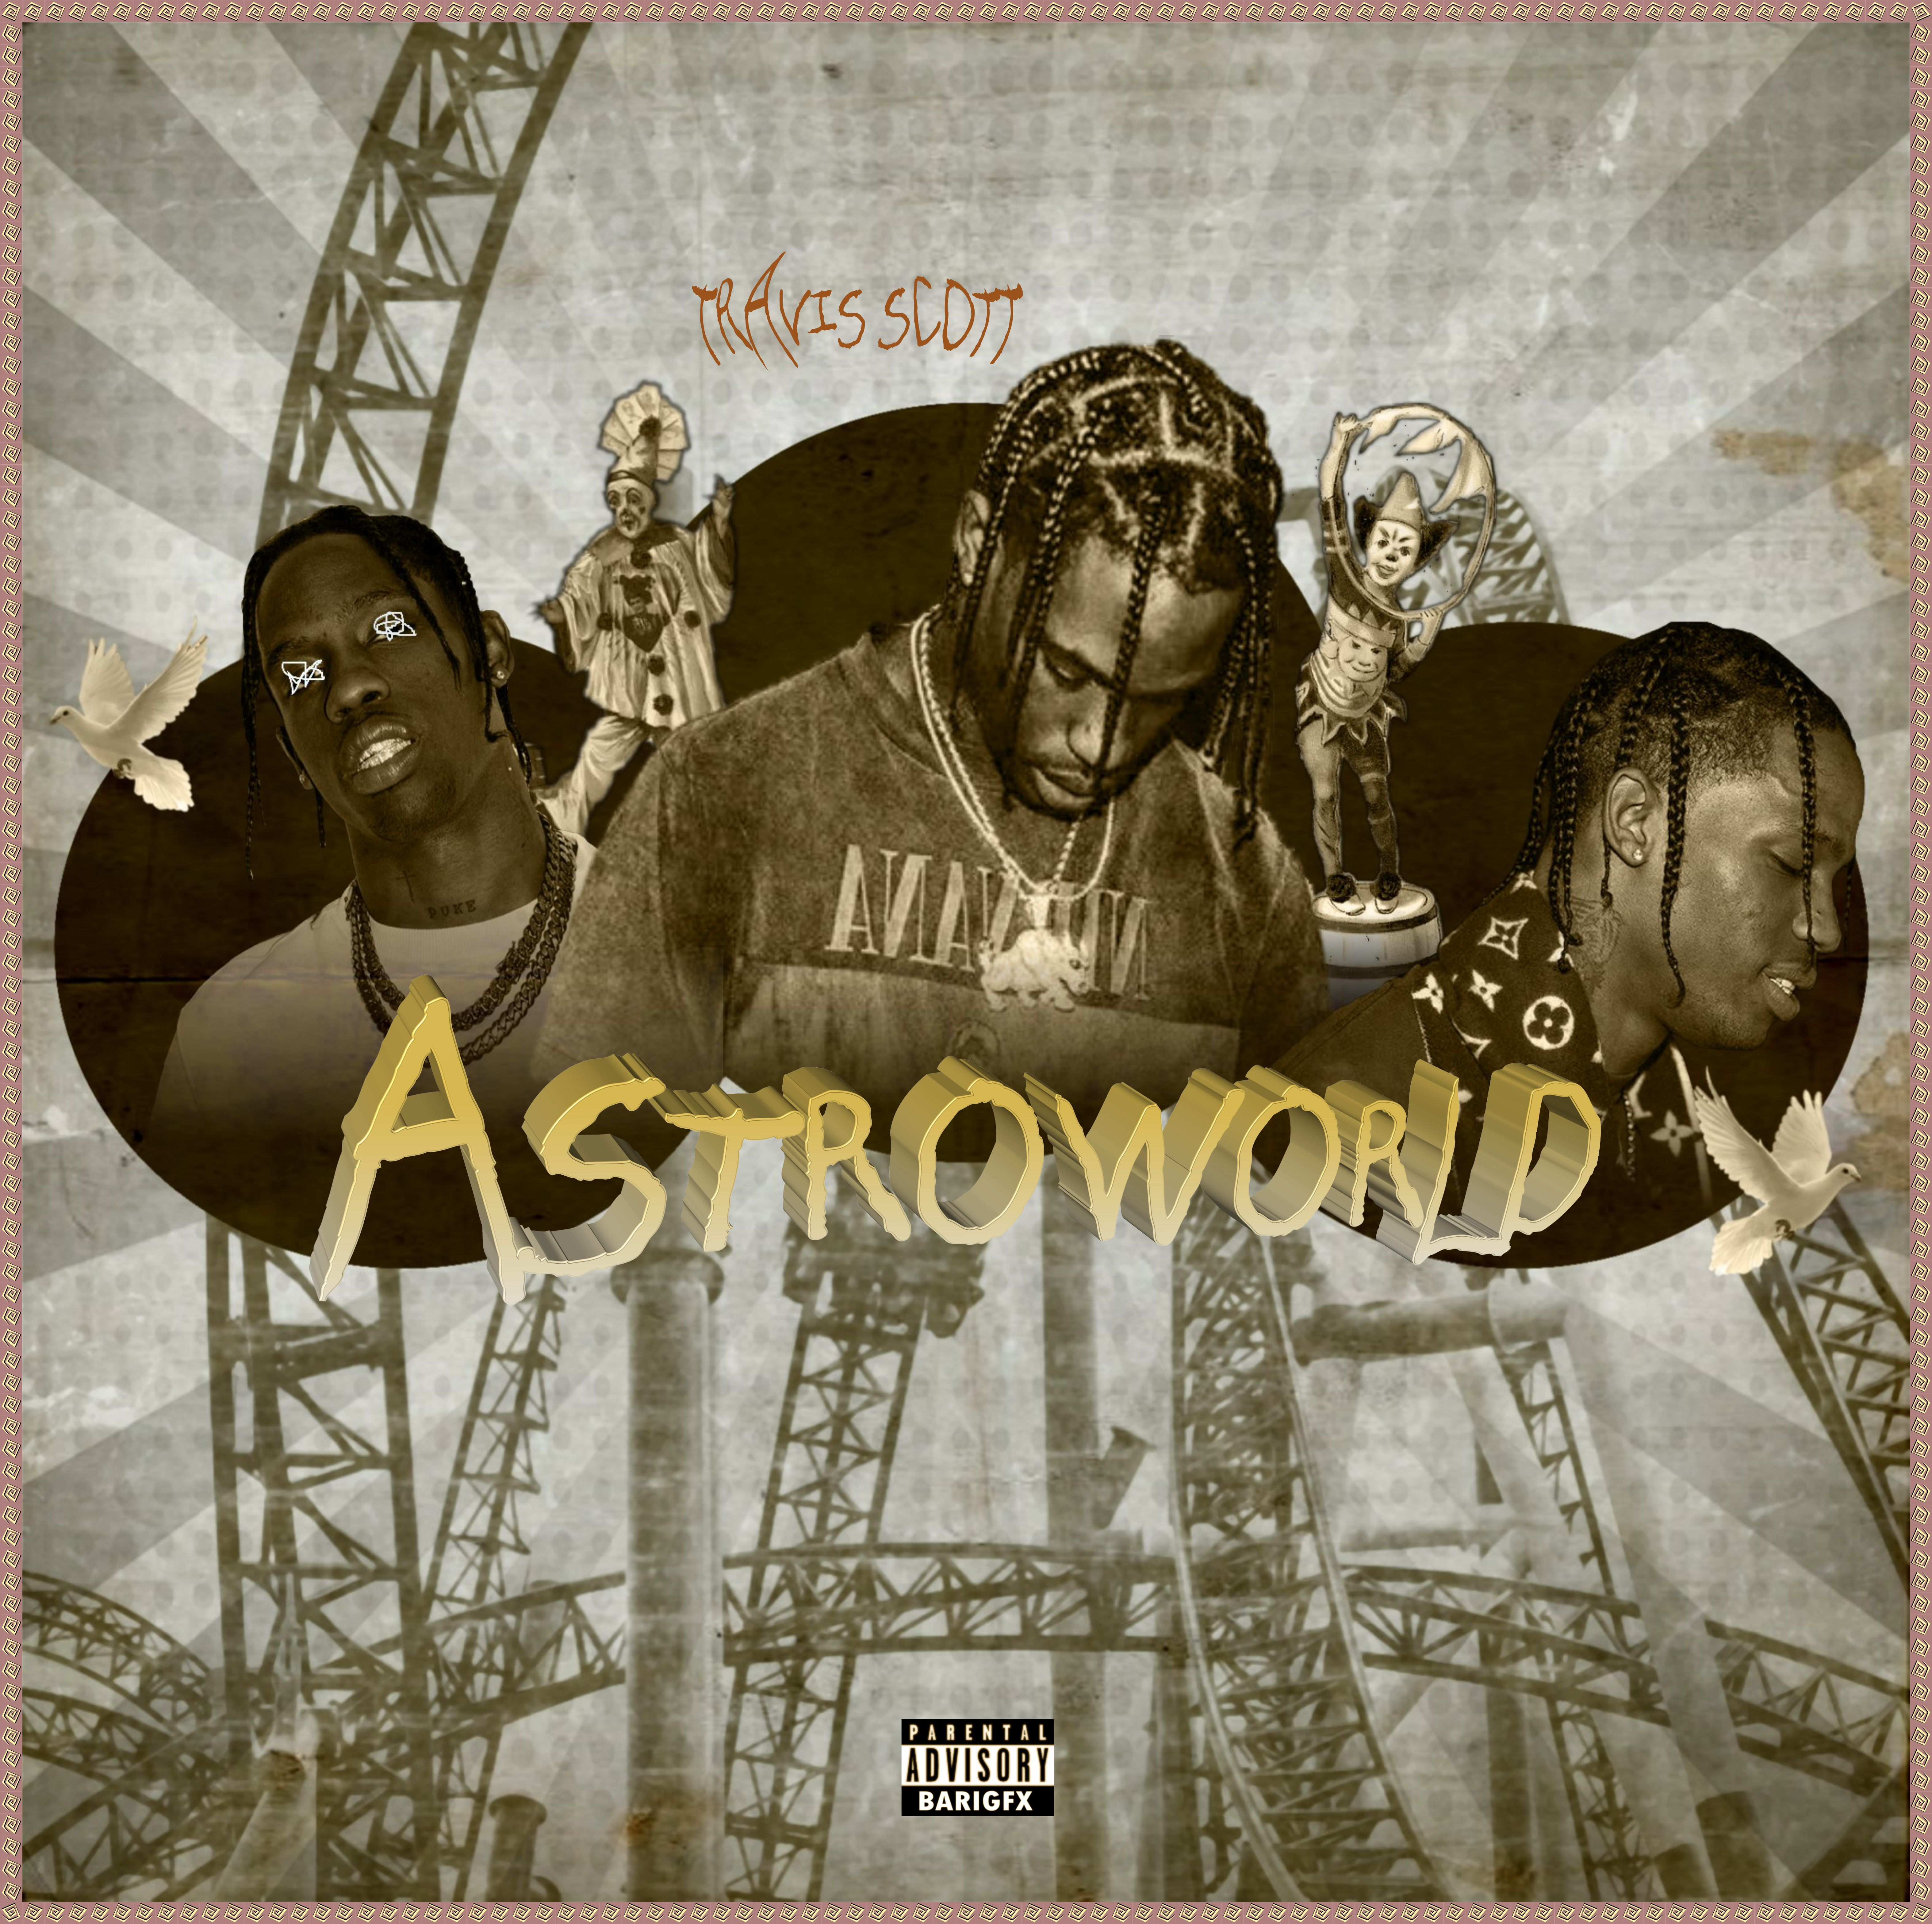 Astroworld Travis Scott hd mobile